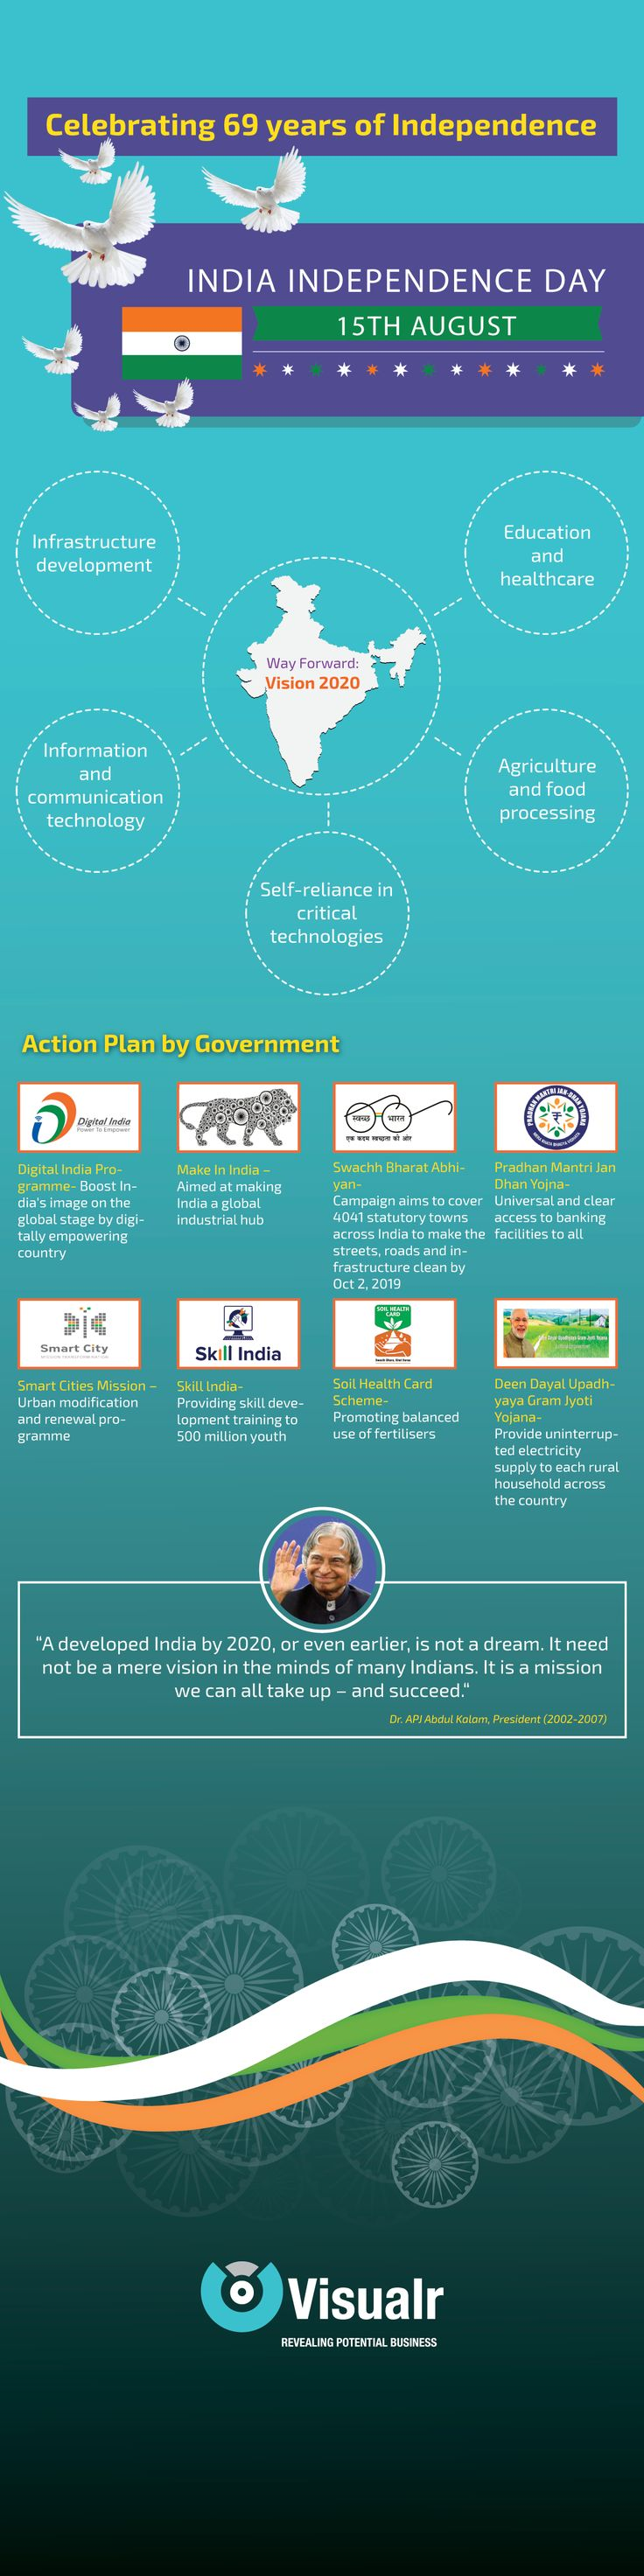 Independence Day India Vision2020